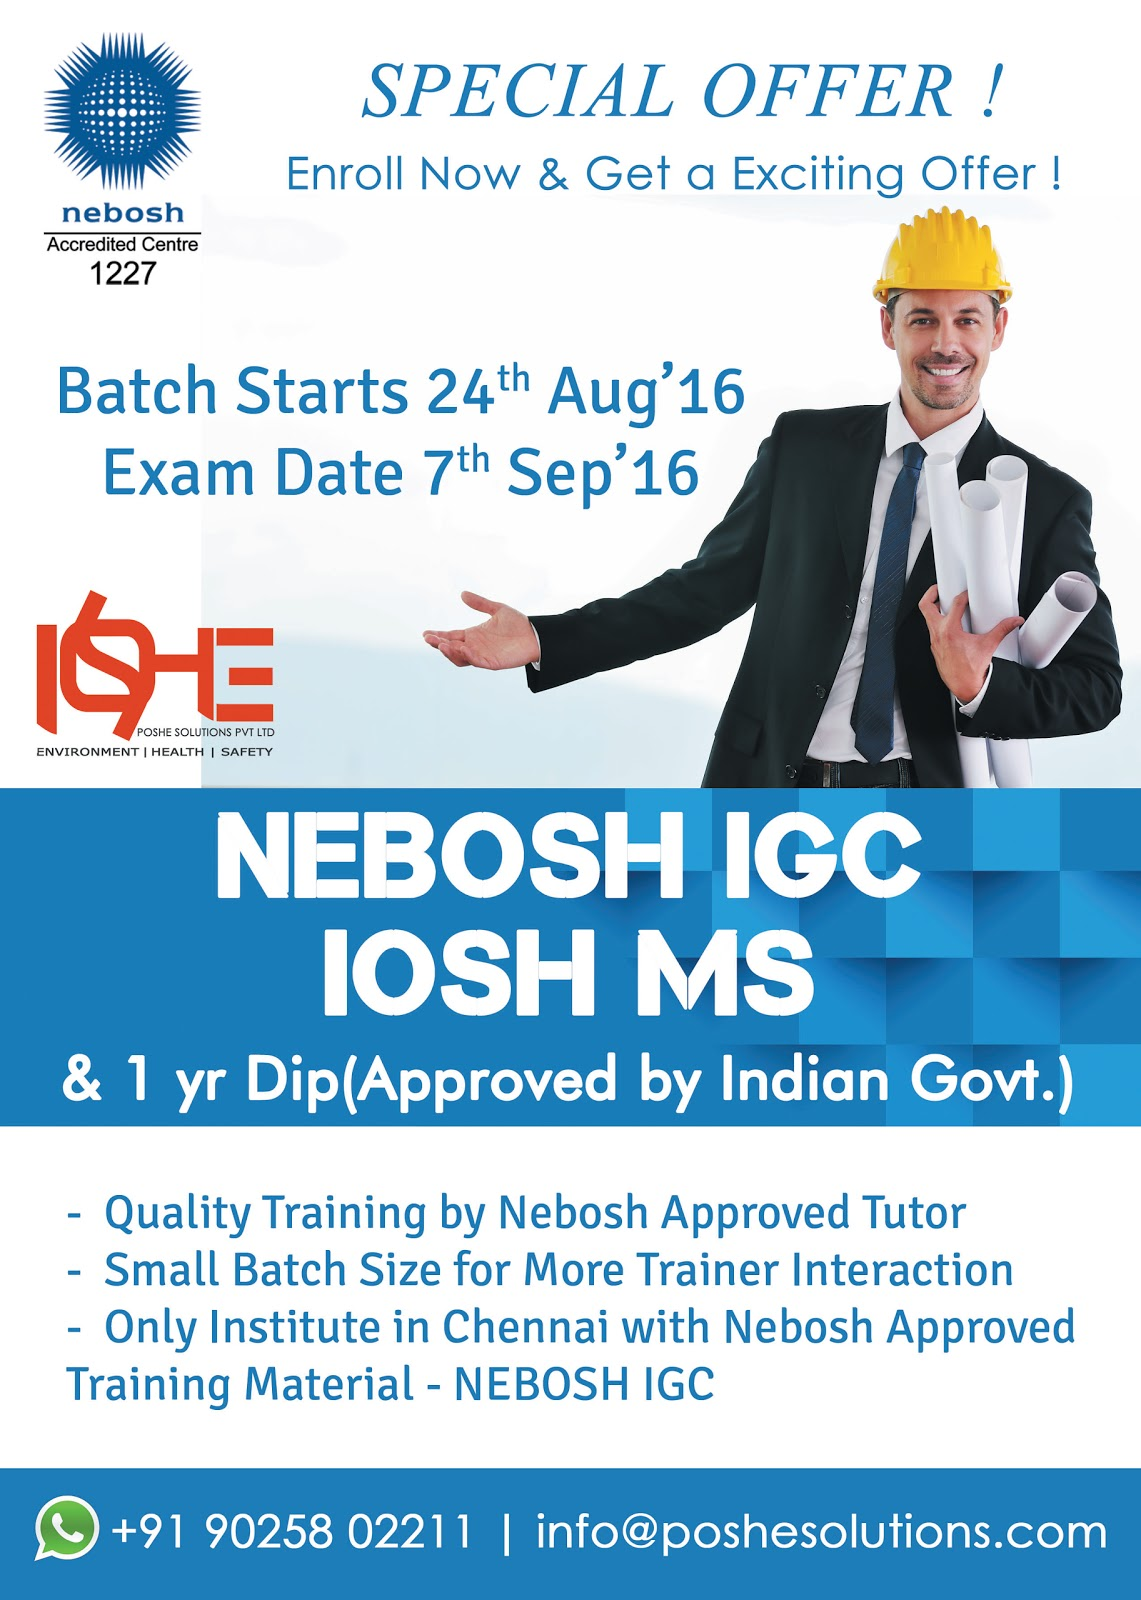 From POSHE Brings A Breakthrough For Your Career In Health And Safety Or Step Ahead To Do Further Qualifications Like NEBOSH International Diploma